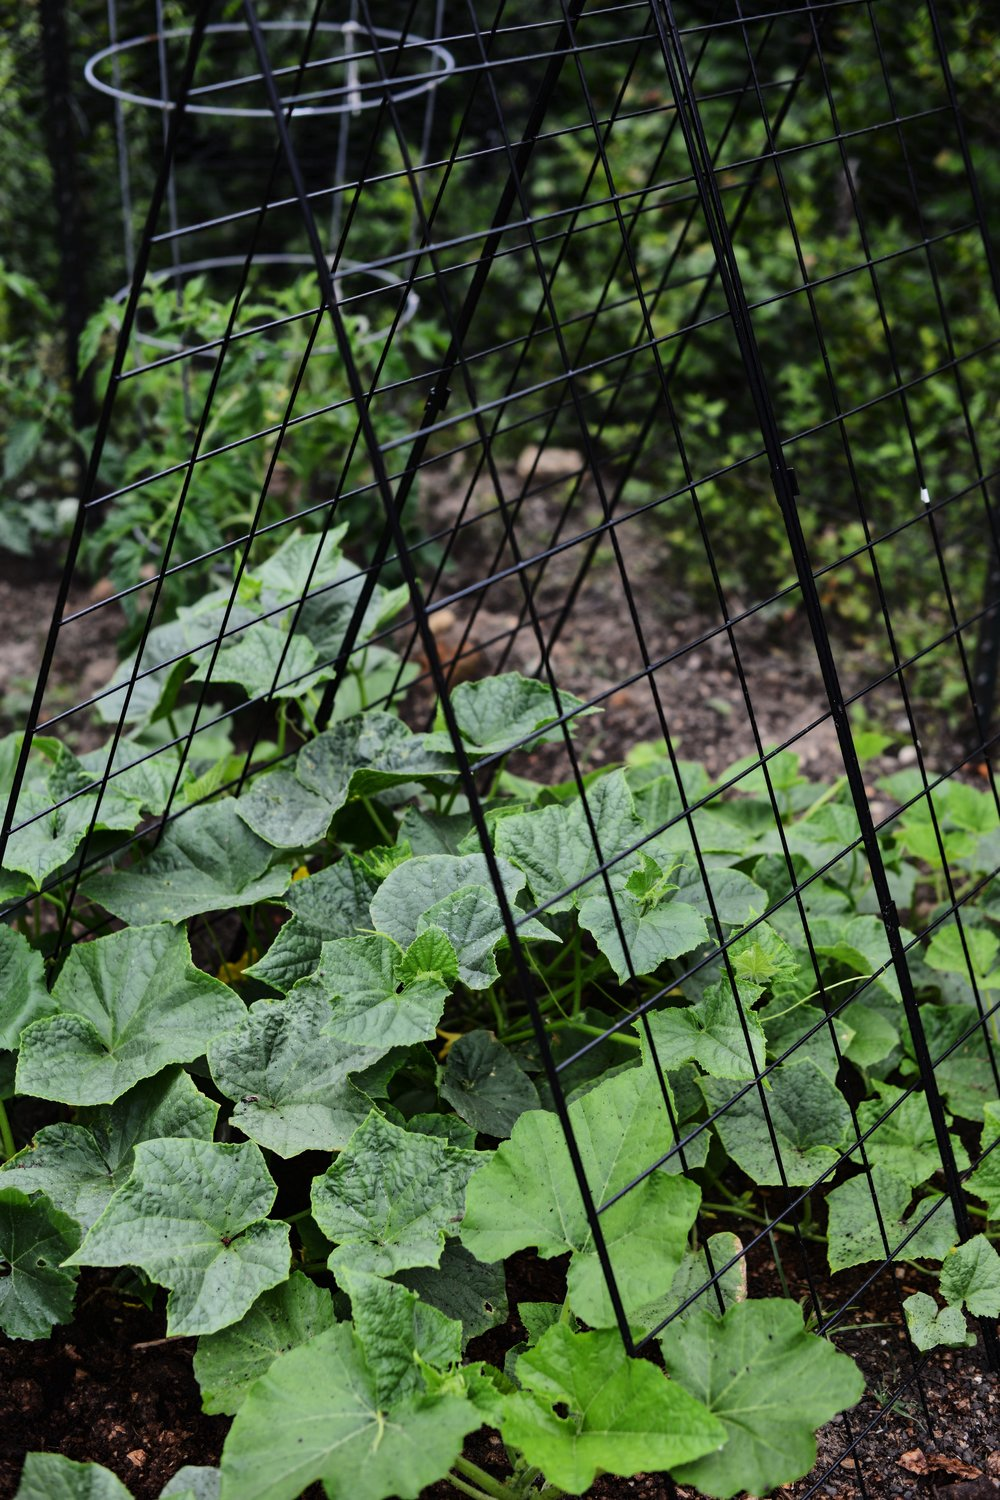 Heirloom Zucchini Future Pickles Taking Over This Deluxe Cucumber Trellis  By Gardeners Supply Co.